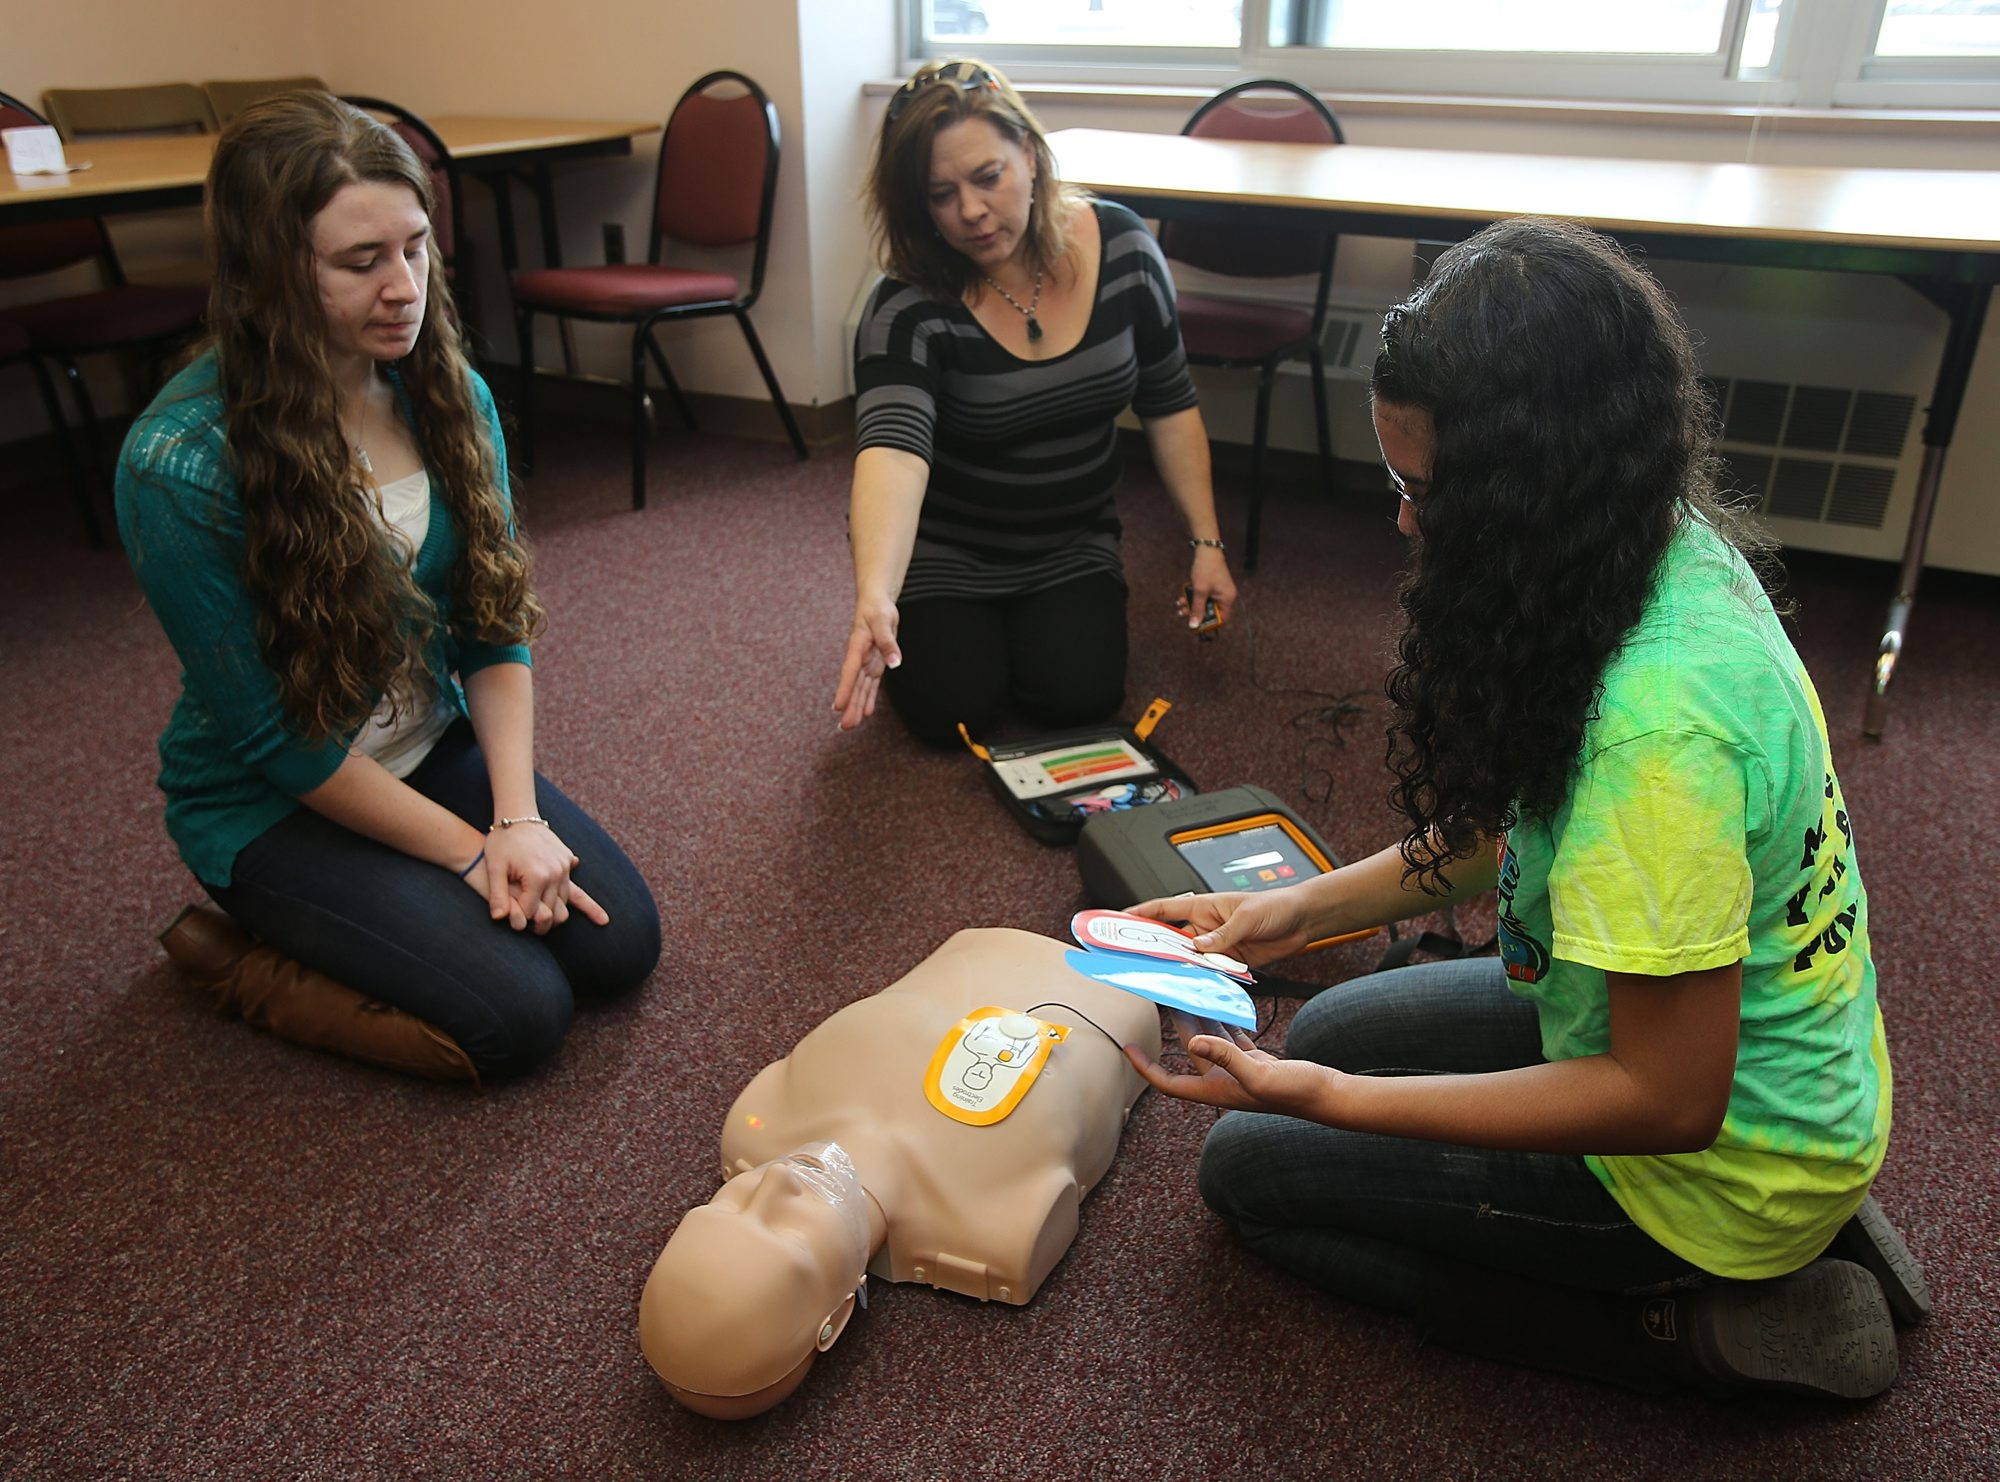 Annette Adamczak, who lost a daughter to heart attack, teaches Natalie McGill, left, and Antoinette Weatherspoon, 16, CPR techniques, using a Prestan CPR mannequin and an AED trainer, at Cheektowaga Central High School.